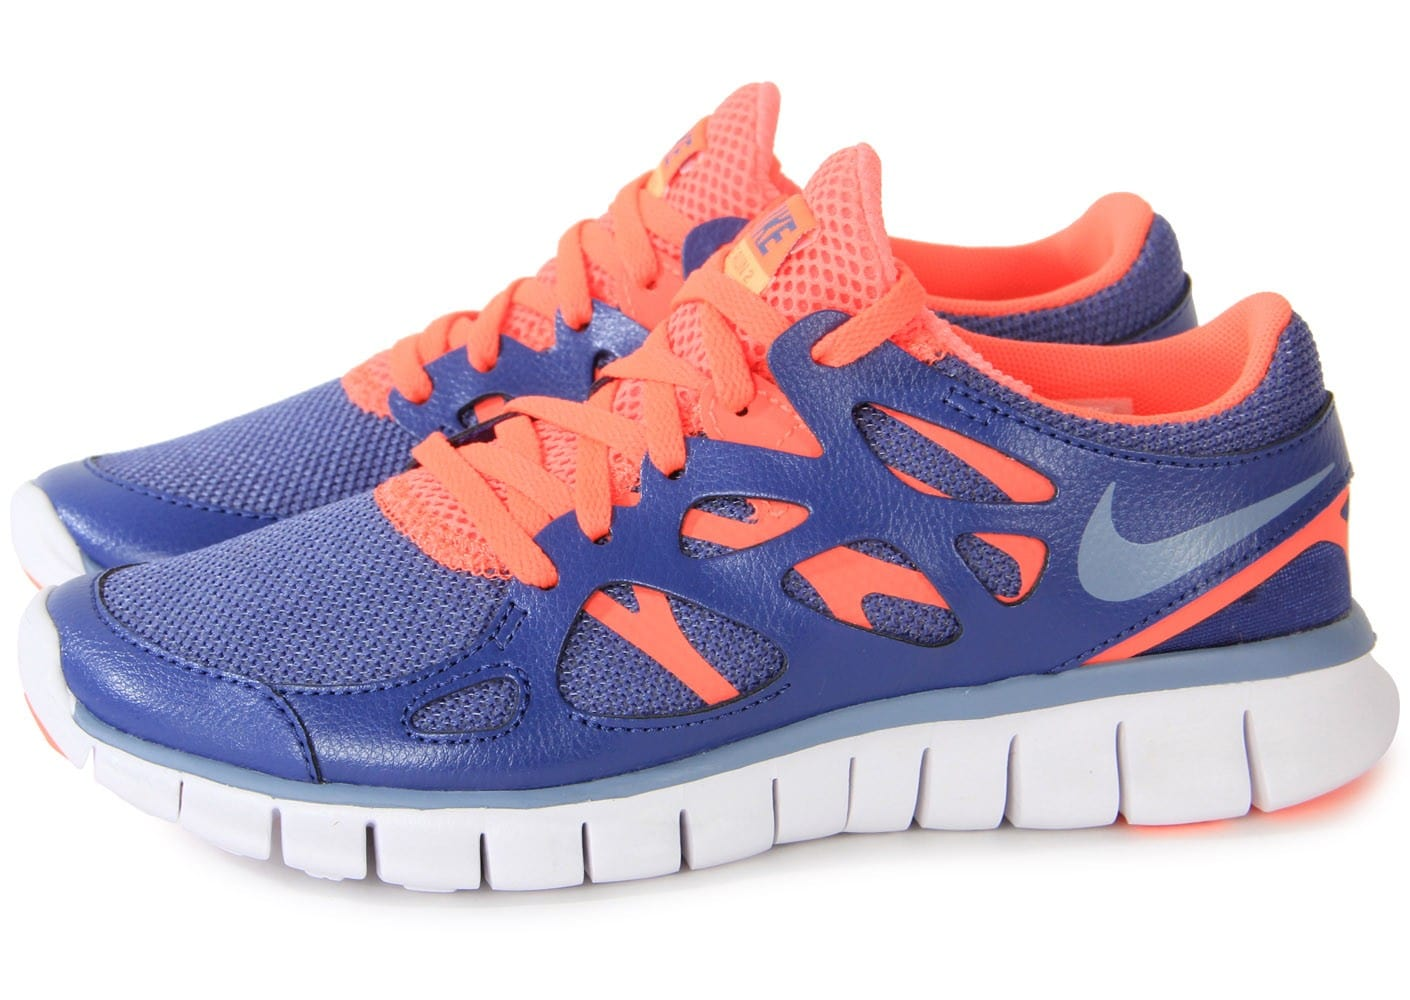 nouveau style 86434 97062 Nike Free Run 2 Ext Blue Legend - Chaussures Chaussures ...